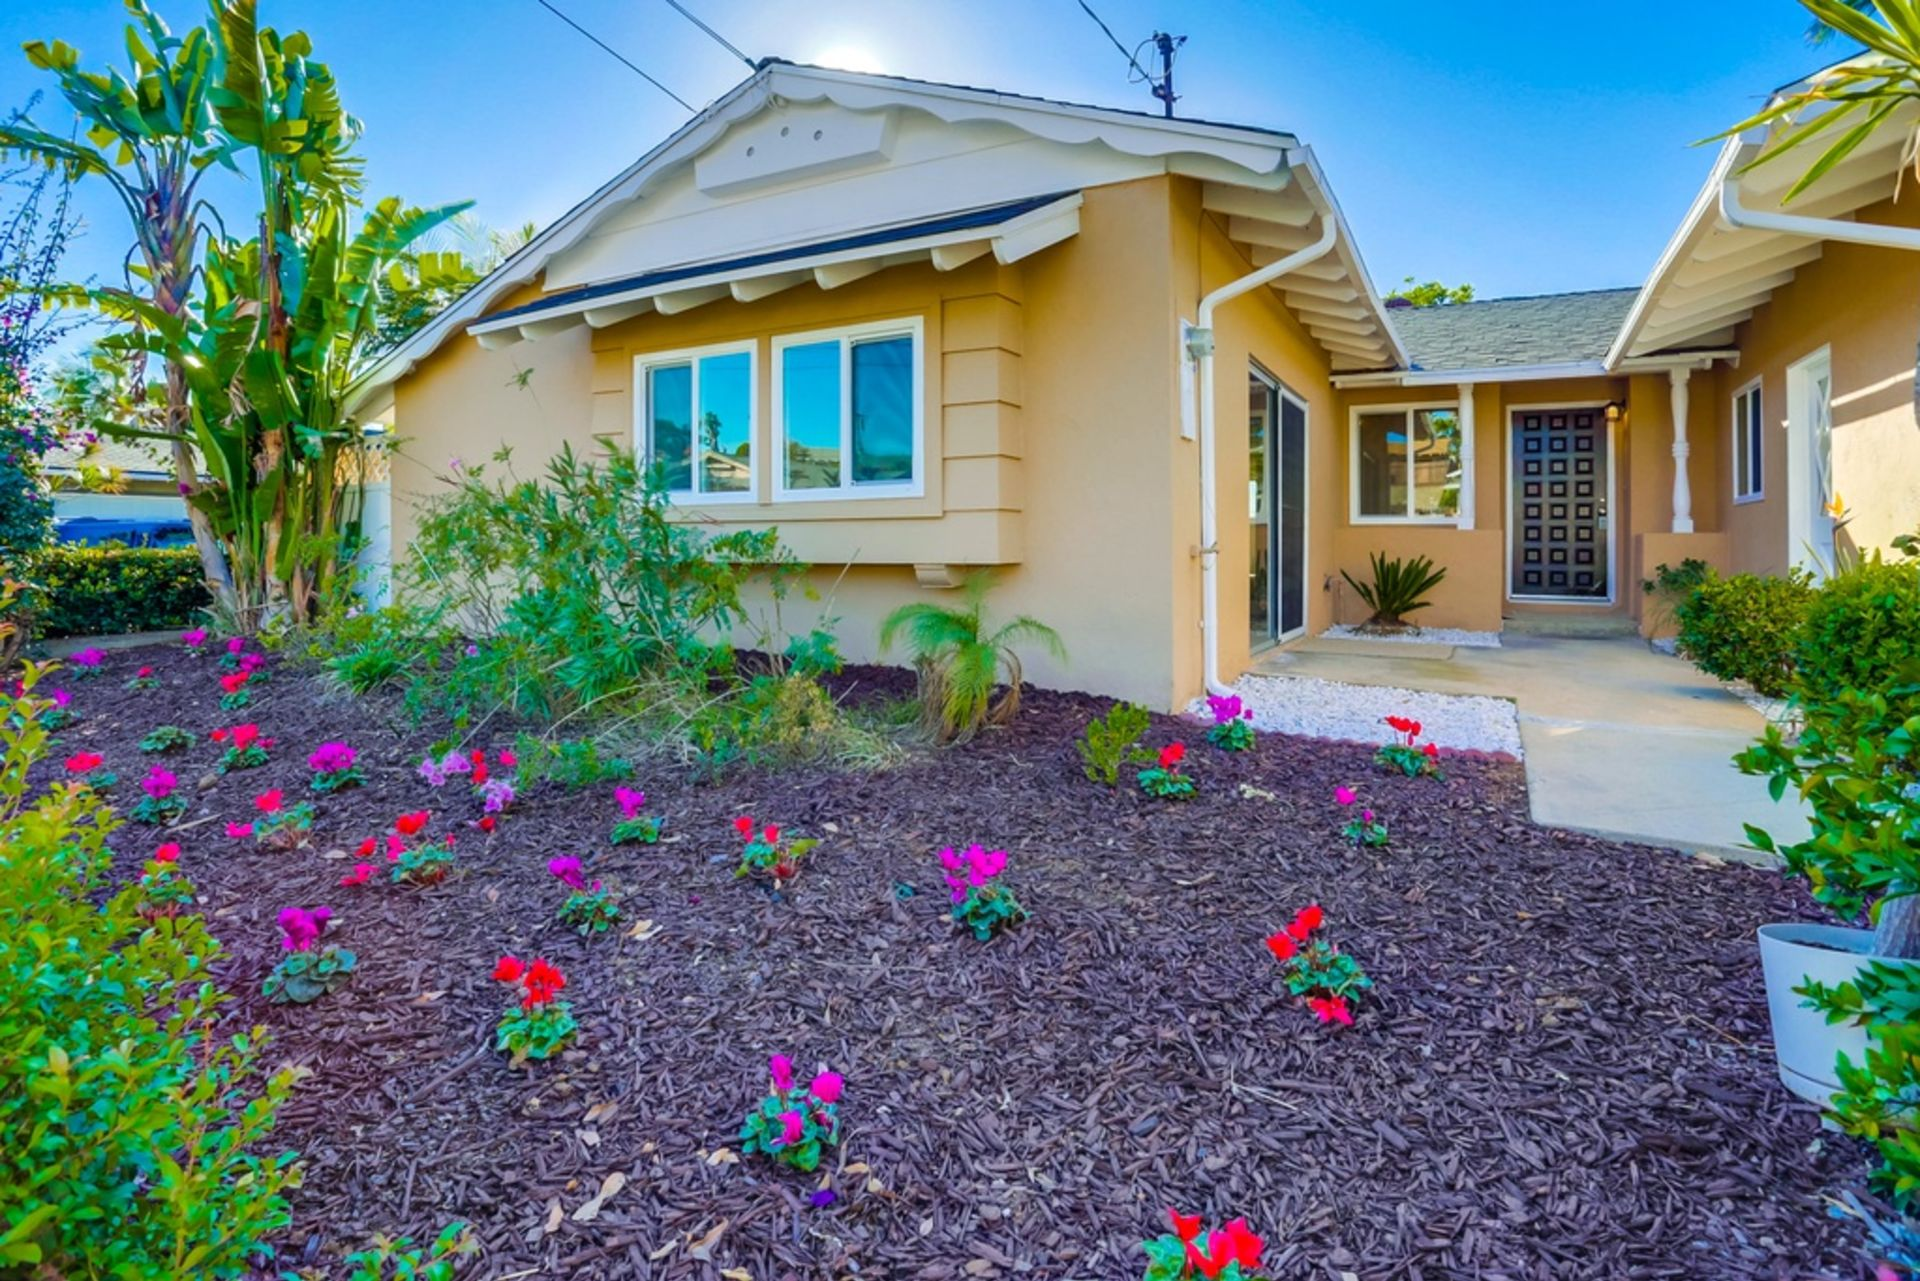 OPEN HOUSE in Clairemont On THURSDAY!